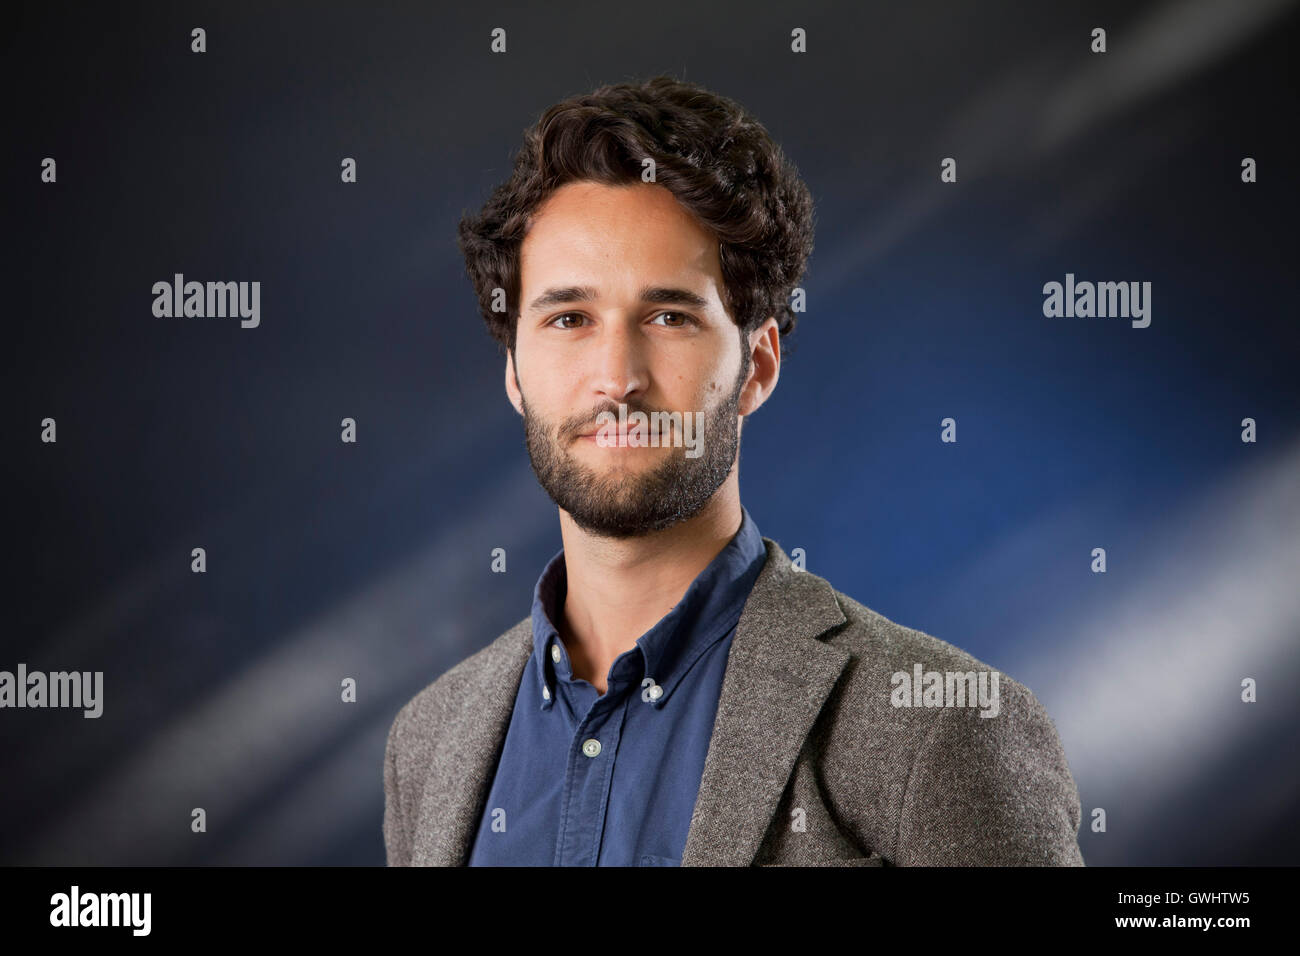 Daniel Susskind, the economist, lecturer and co-author, at the Edinburgh International Book Festival. Edinburgh, - Stock Image